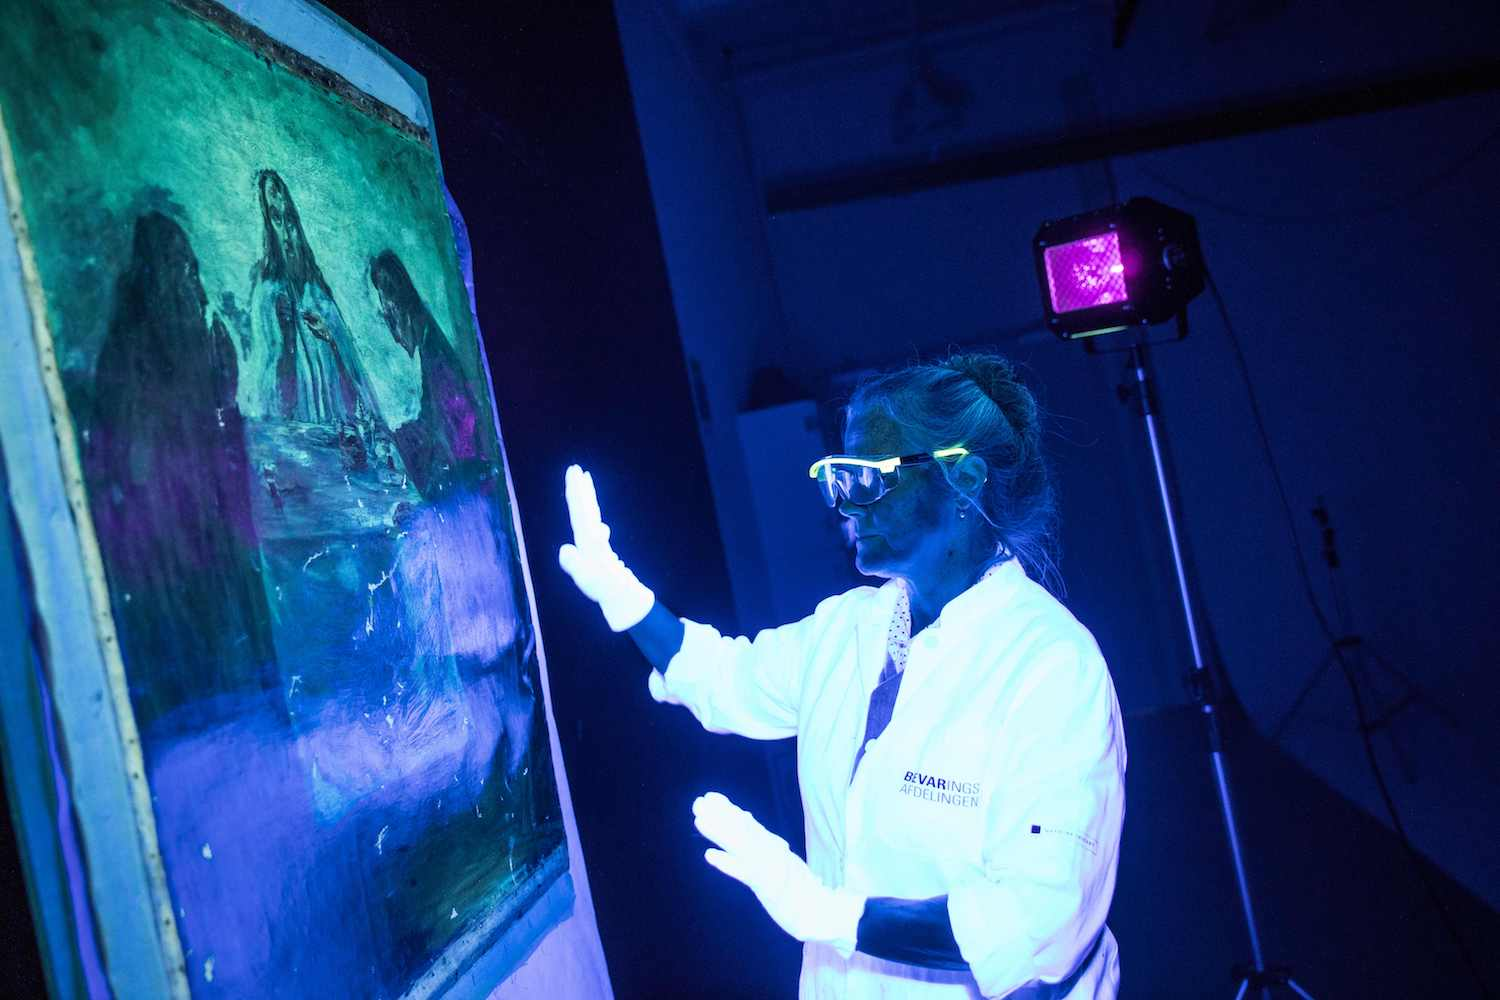 "Taxidermist Mikala Bagge evaluates the damages on the Emil Nolde painting "" Dinner in Emmaus"" with the help of UV lighting at the Danish National Museum in Brede, near Copenhagen, Denmark on February 08, 2018. After having been stolen in 2014 in Oelstrup church close to Ringkoebing in Denmark and emerged in Germany in january 2018 the painting, which has an estimated value of 10 million danish kroner, arrived at the Danish National Museum and will now undergo restoration. / AFP PHOTO / Ritzau Scanpix AND Scanpix / Nikolai Linares / Denmark OUT        (Photo credit should read NIKOLAI LINARES/AFP/Getty Images)"